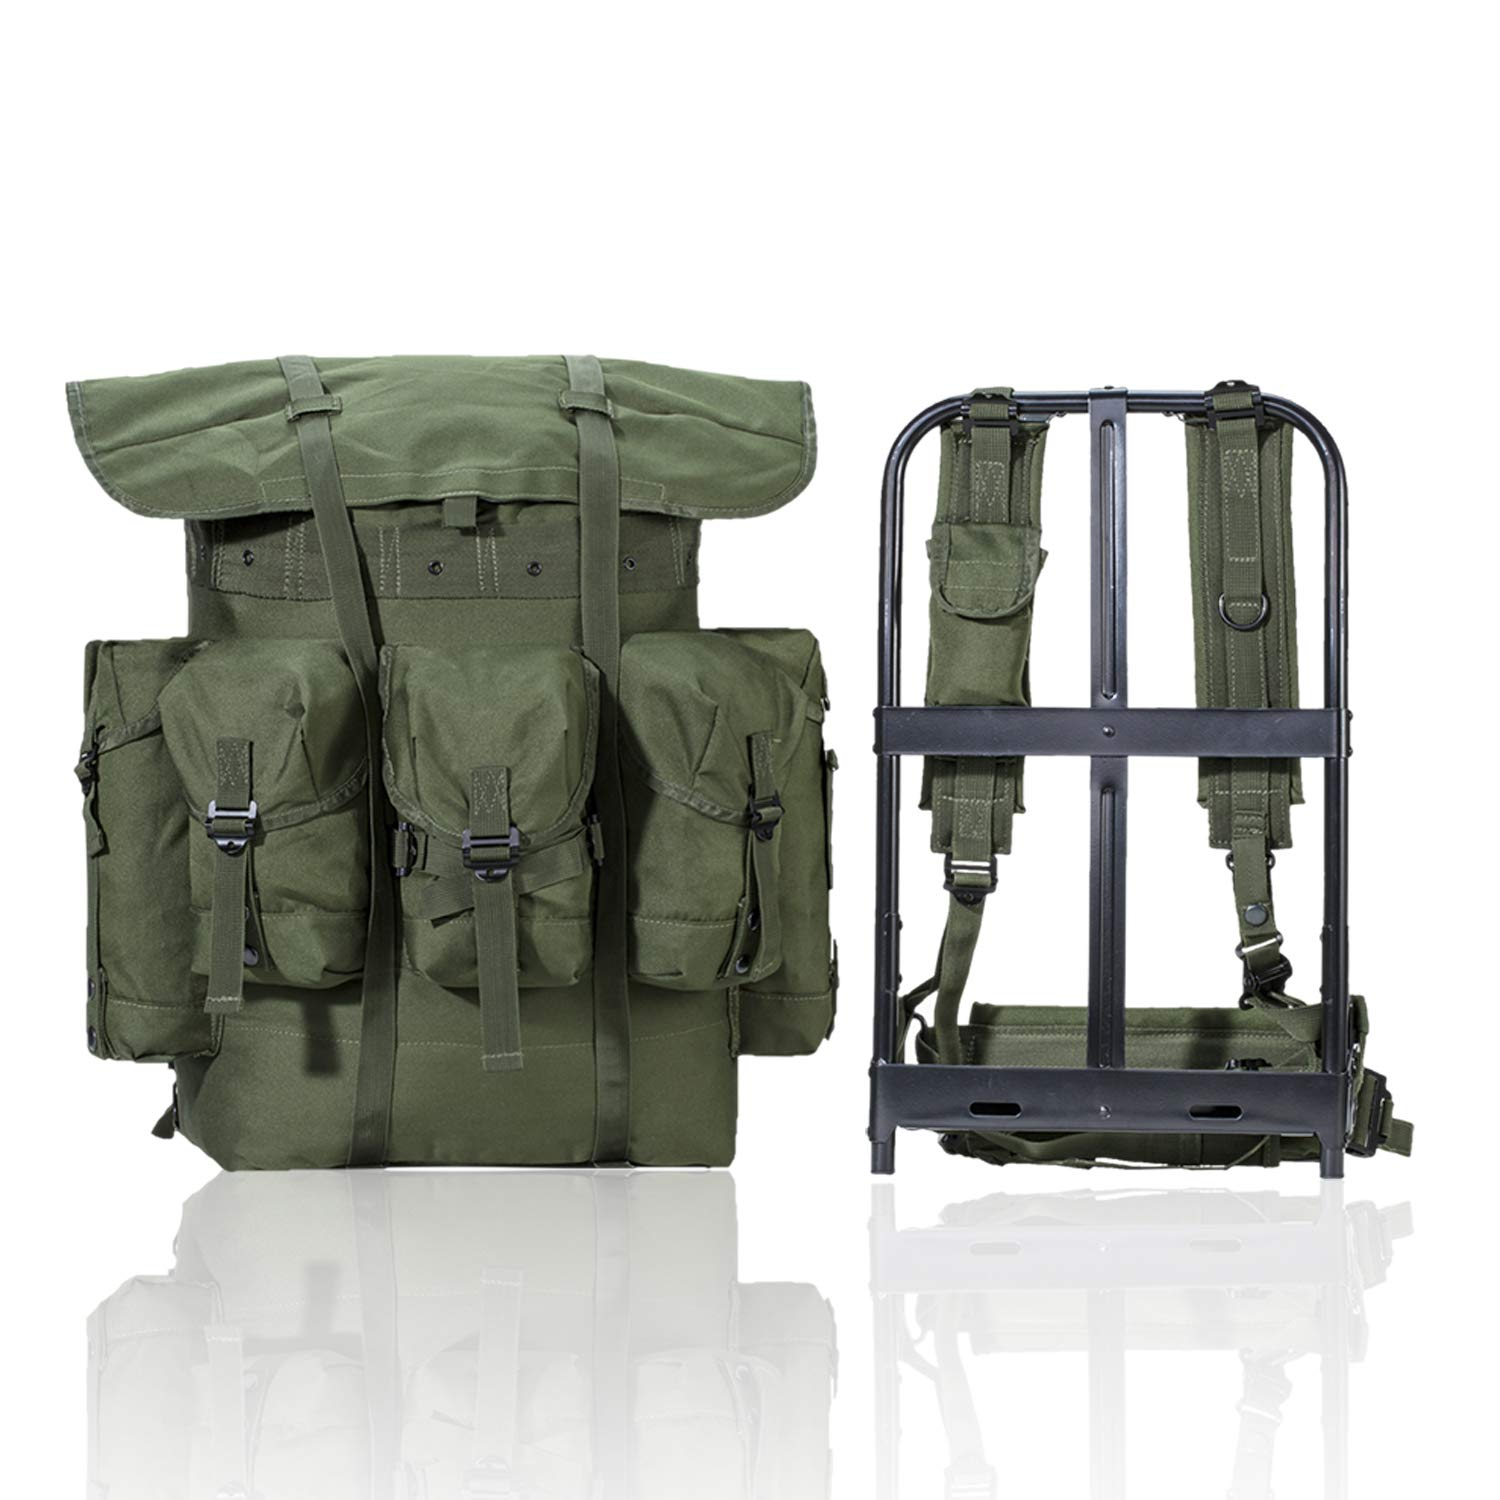 AKmaxUS Military Surplus Rucksack Alice Pack,Army Survival Combat Field A.L.I.C.E. Backpack with Suspender Strap and Frame 600D Polyester Waterproof Olive Drab